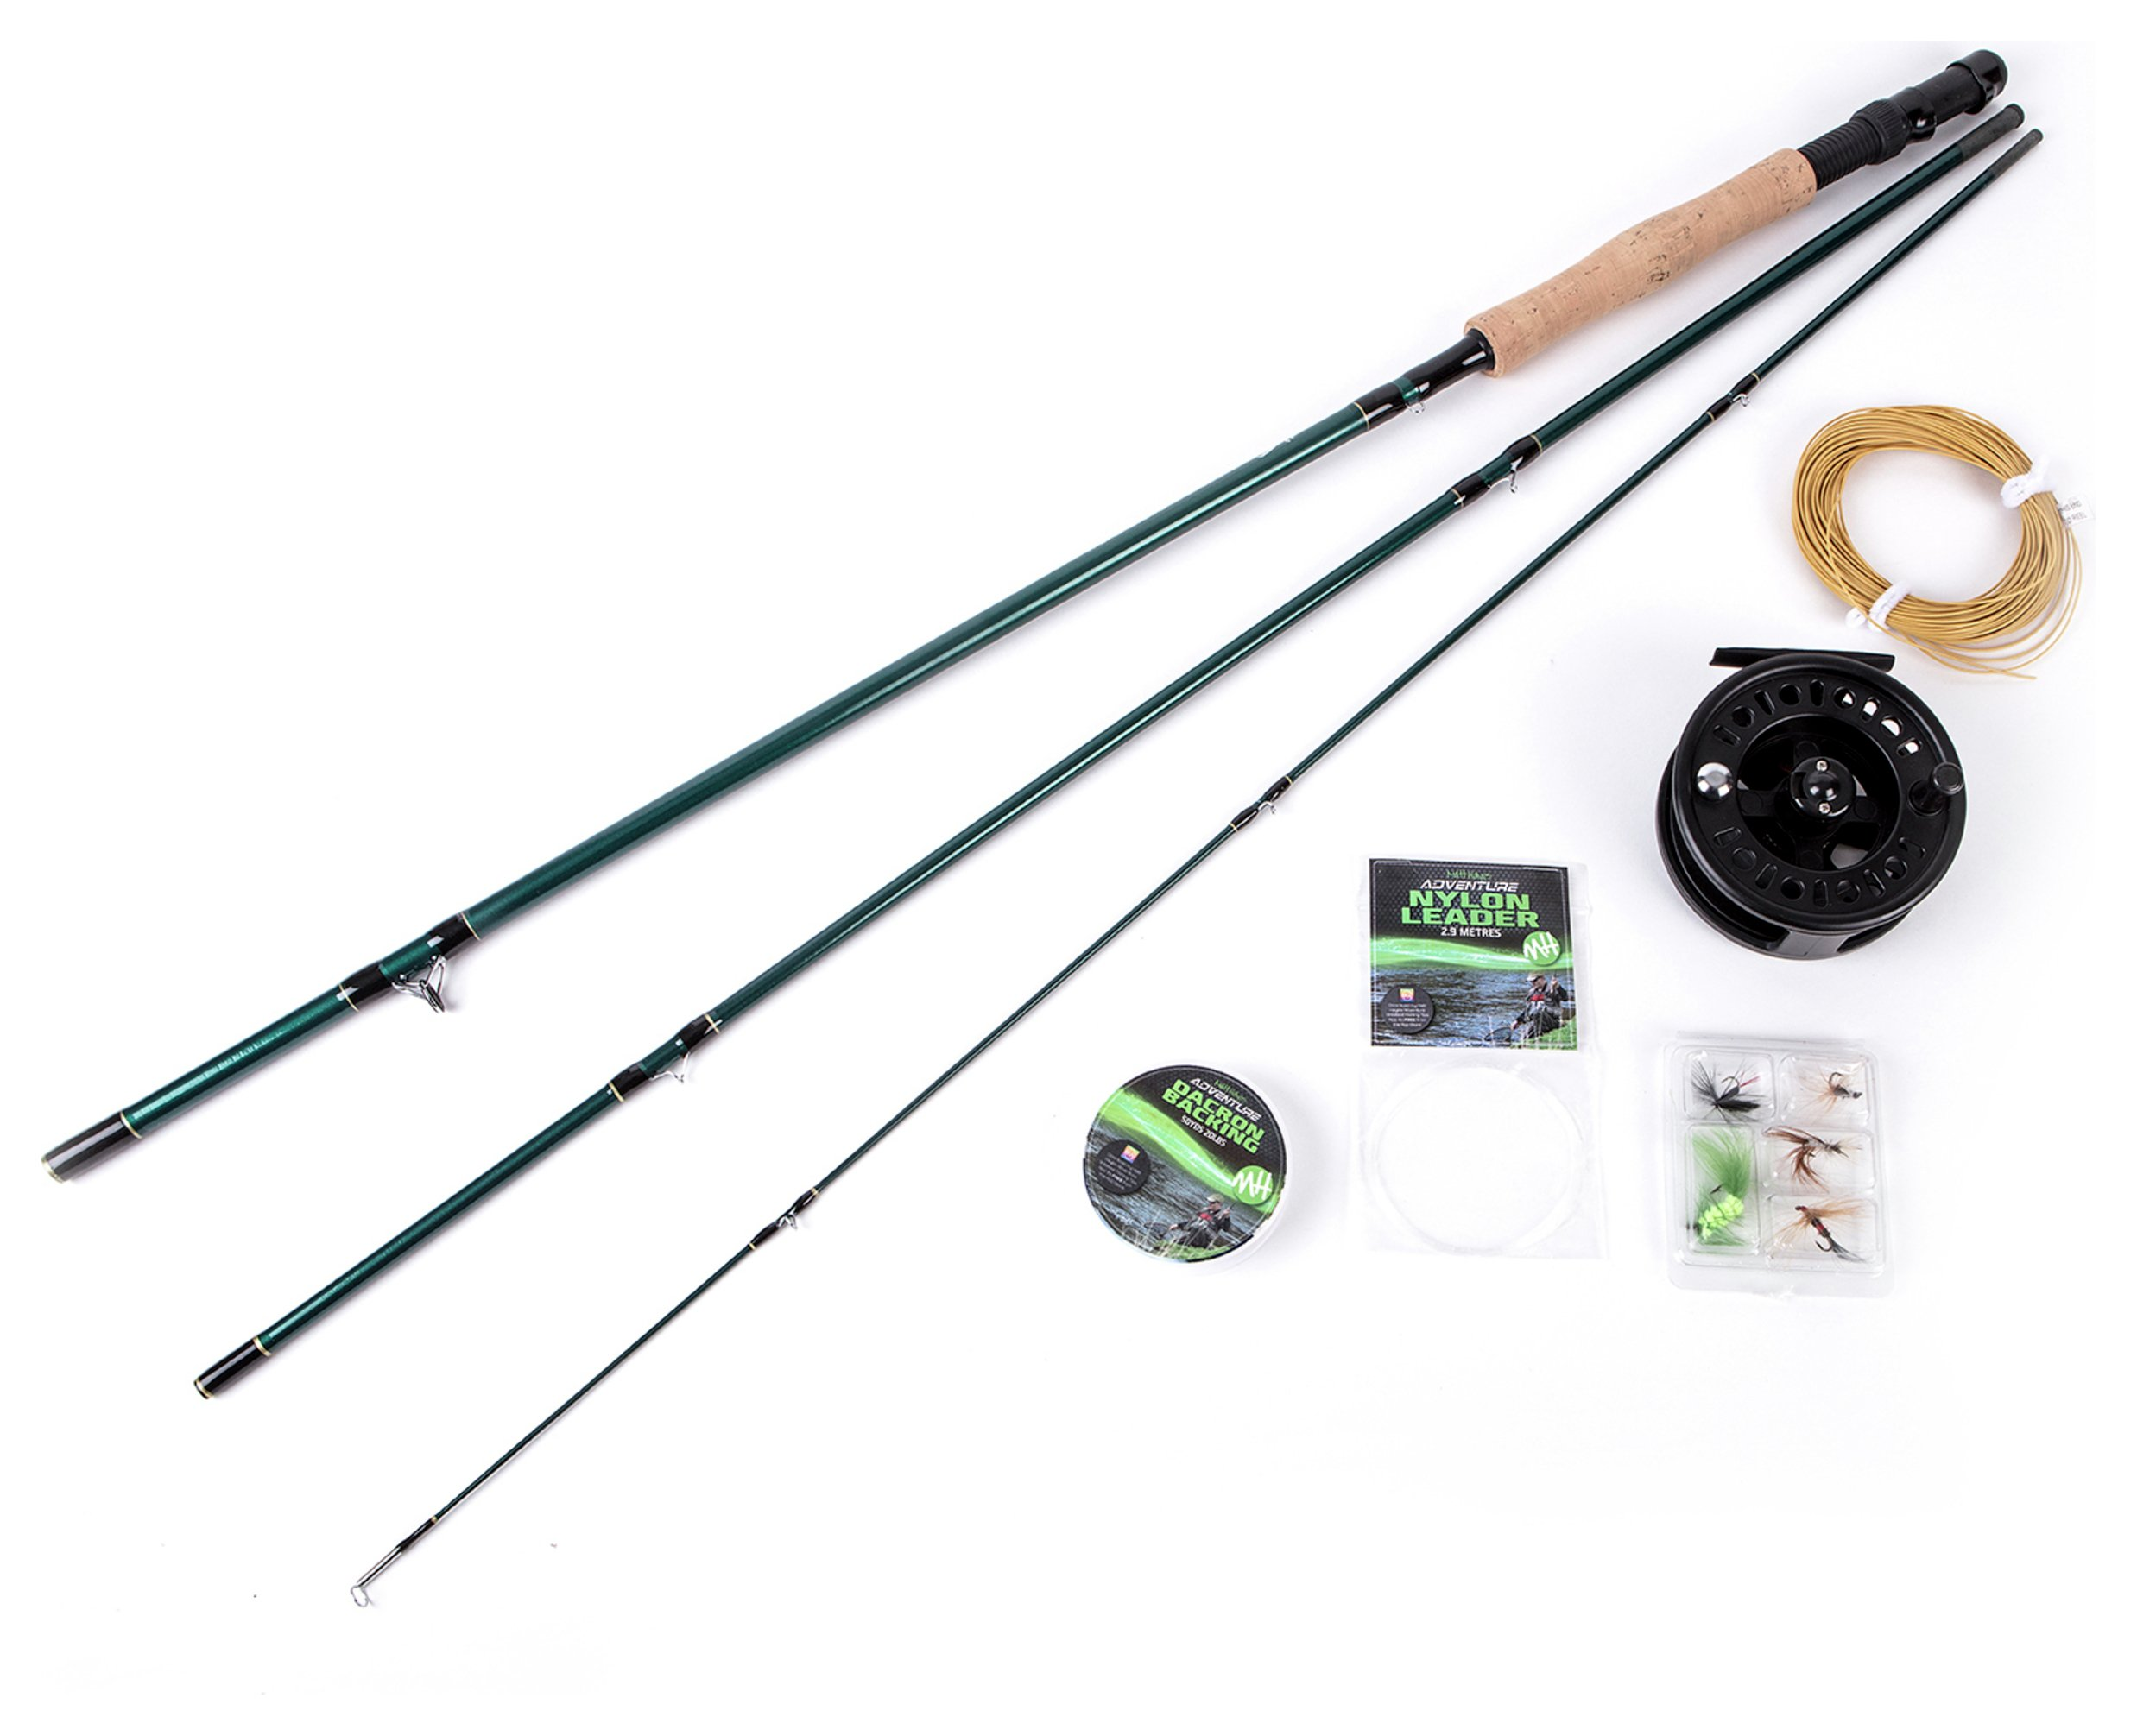 Image of Matt Hayes Fly Fishing Rod, Reel & Accessories